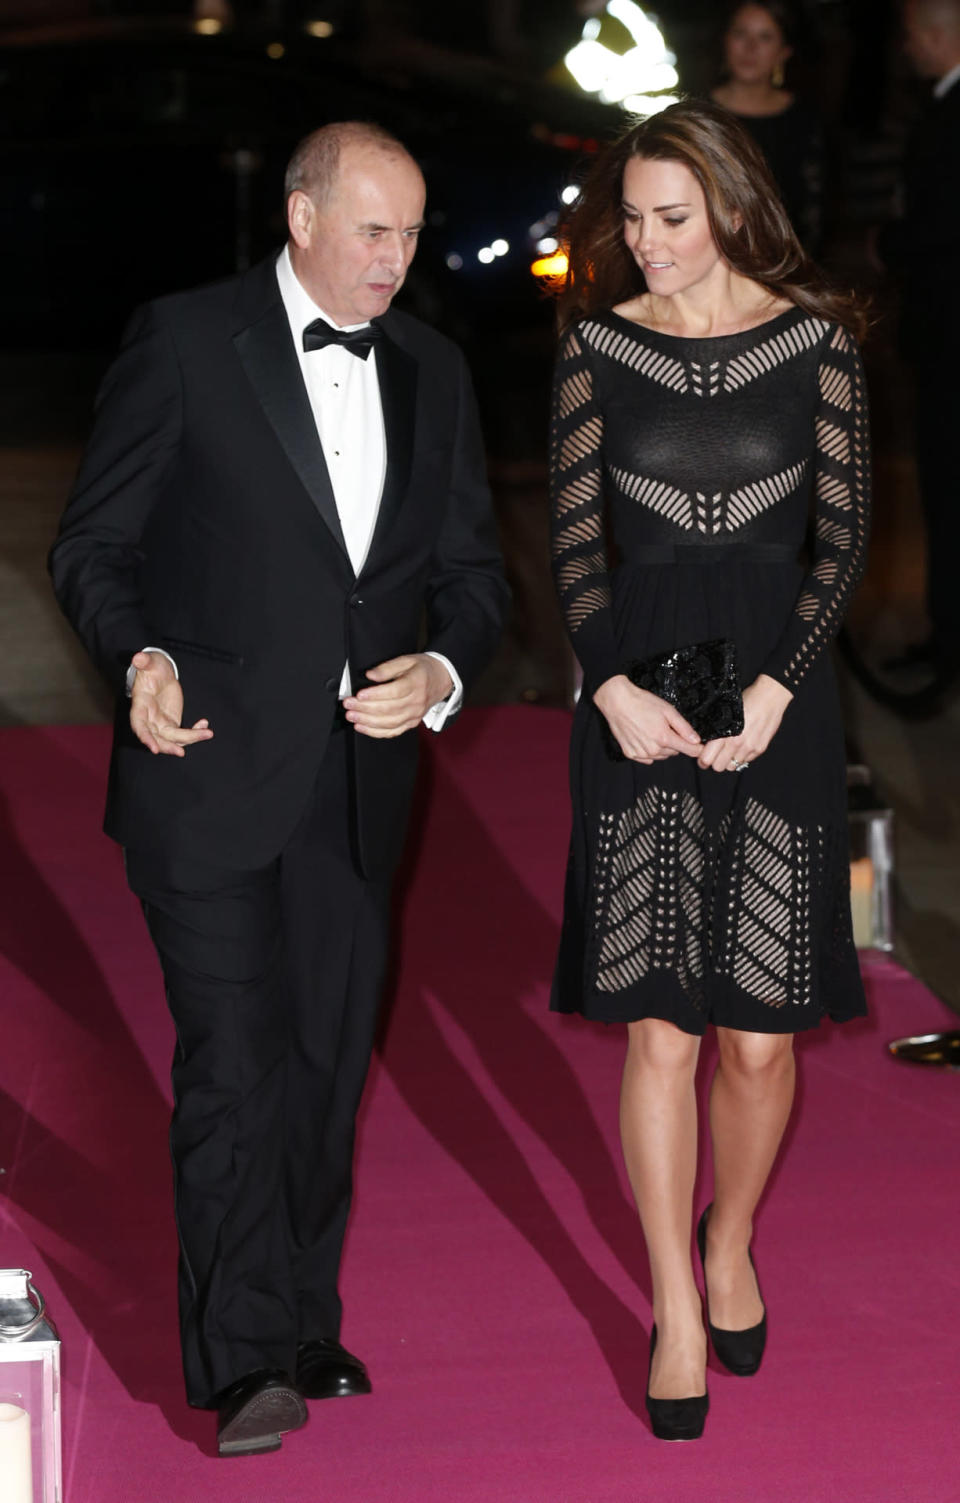 <p>For a charity dinner in London, Kate turned up in a black knitted dress by Temperley London. She completed the look with a black beaded clutch and Jimmy Choo heels. </p><p><i>[Photo: PA]</i></p>